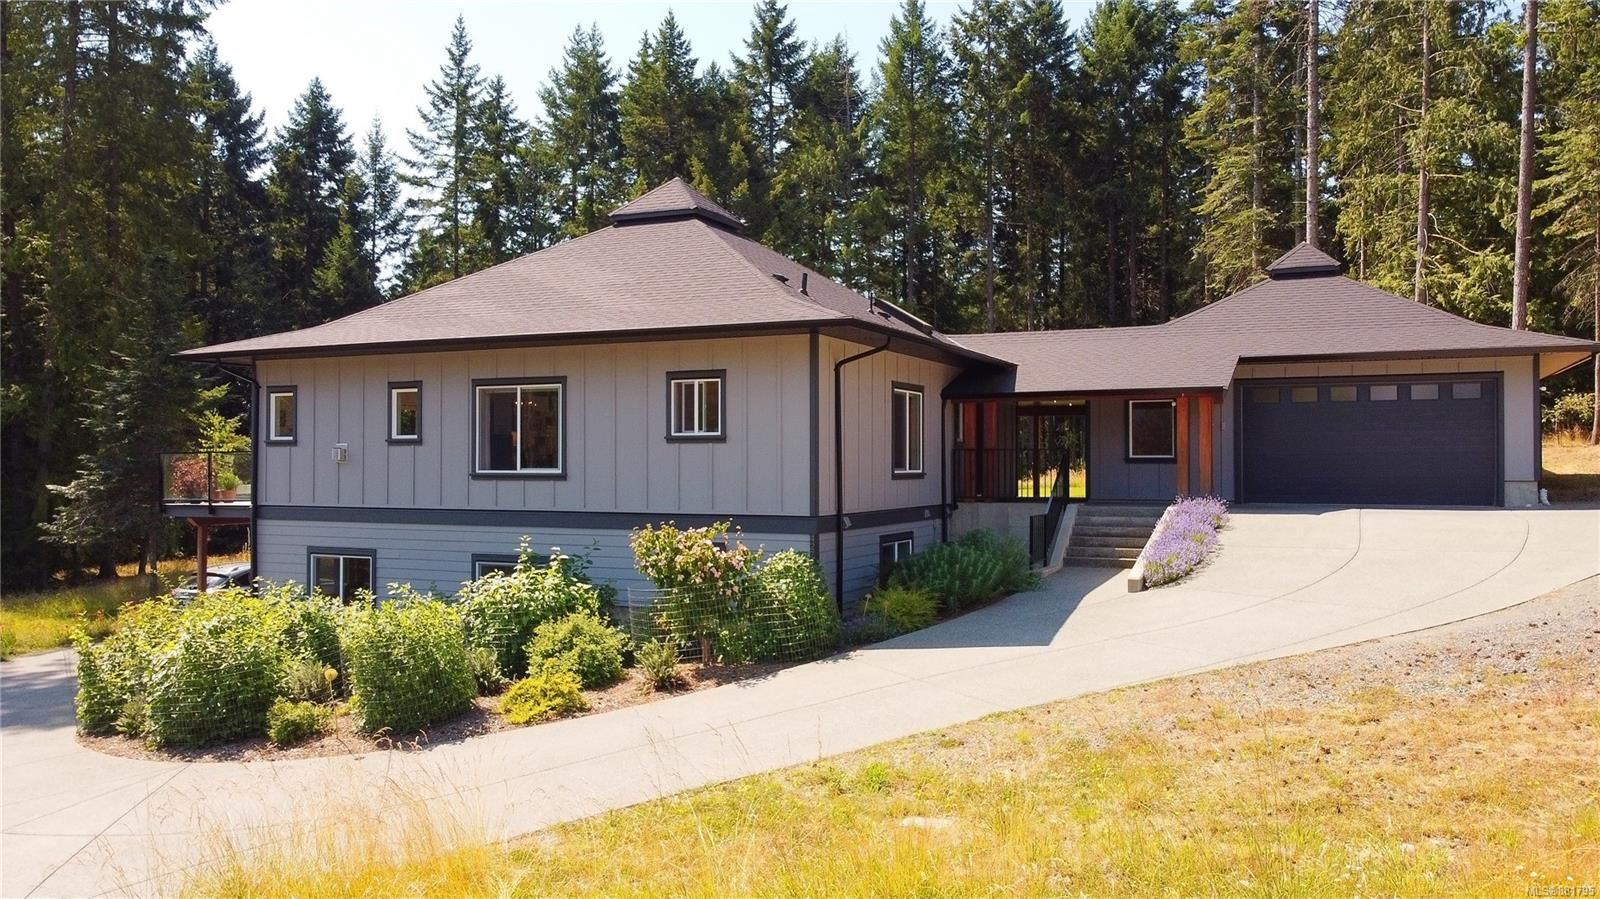 Main Photo: 4271 Cherry Point Close in : ML Cobble Hill House for sale (Malahat & Area)  : MLS®# 881795